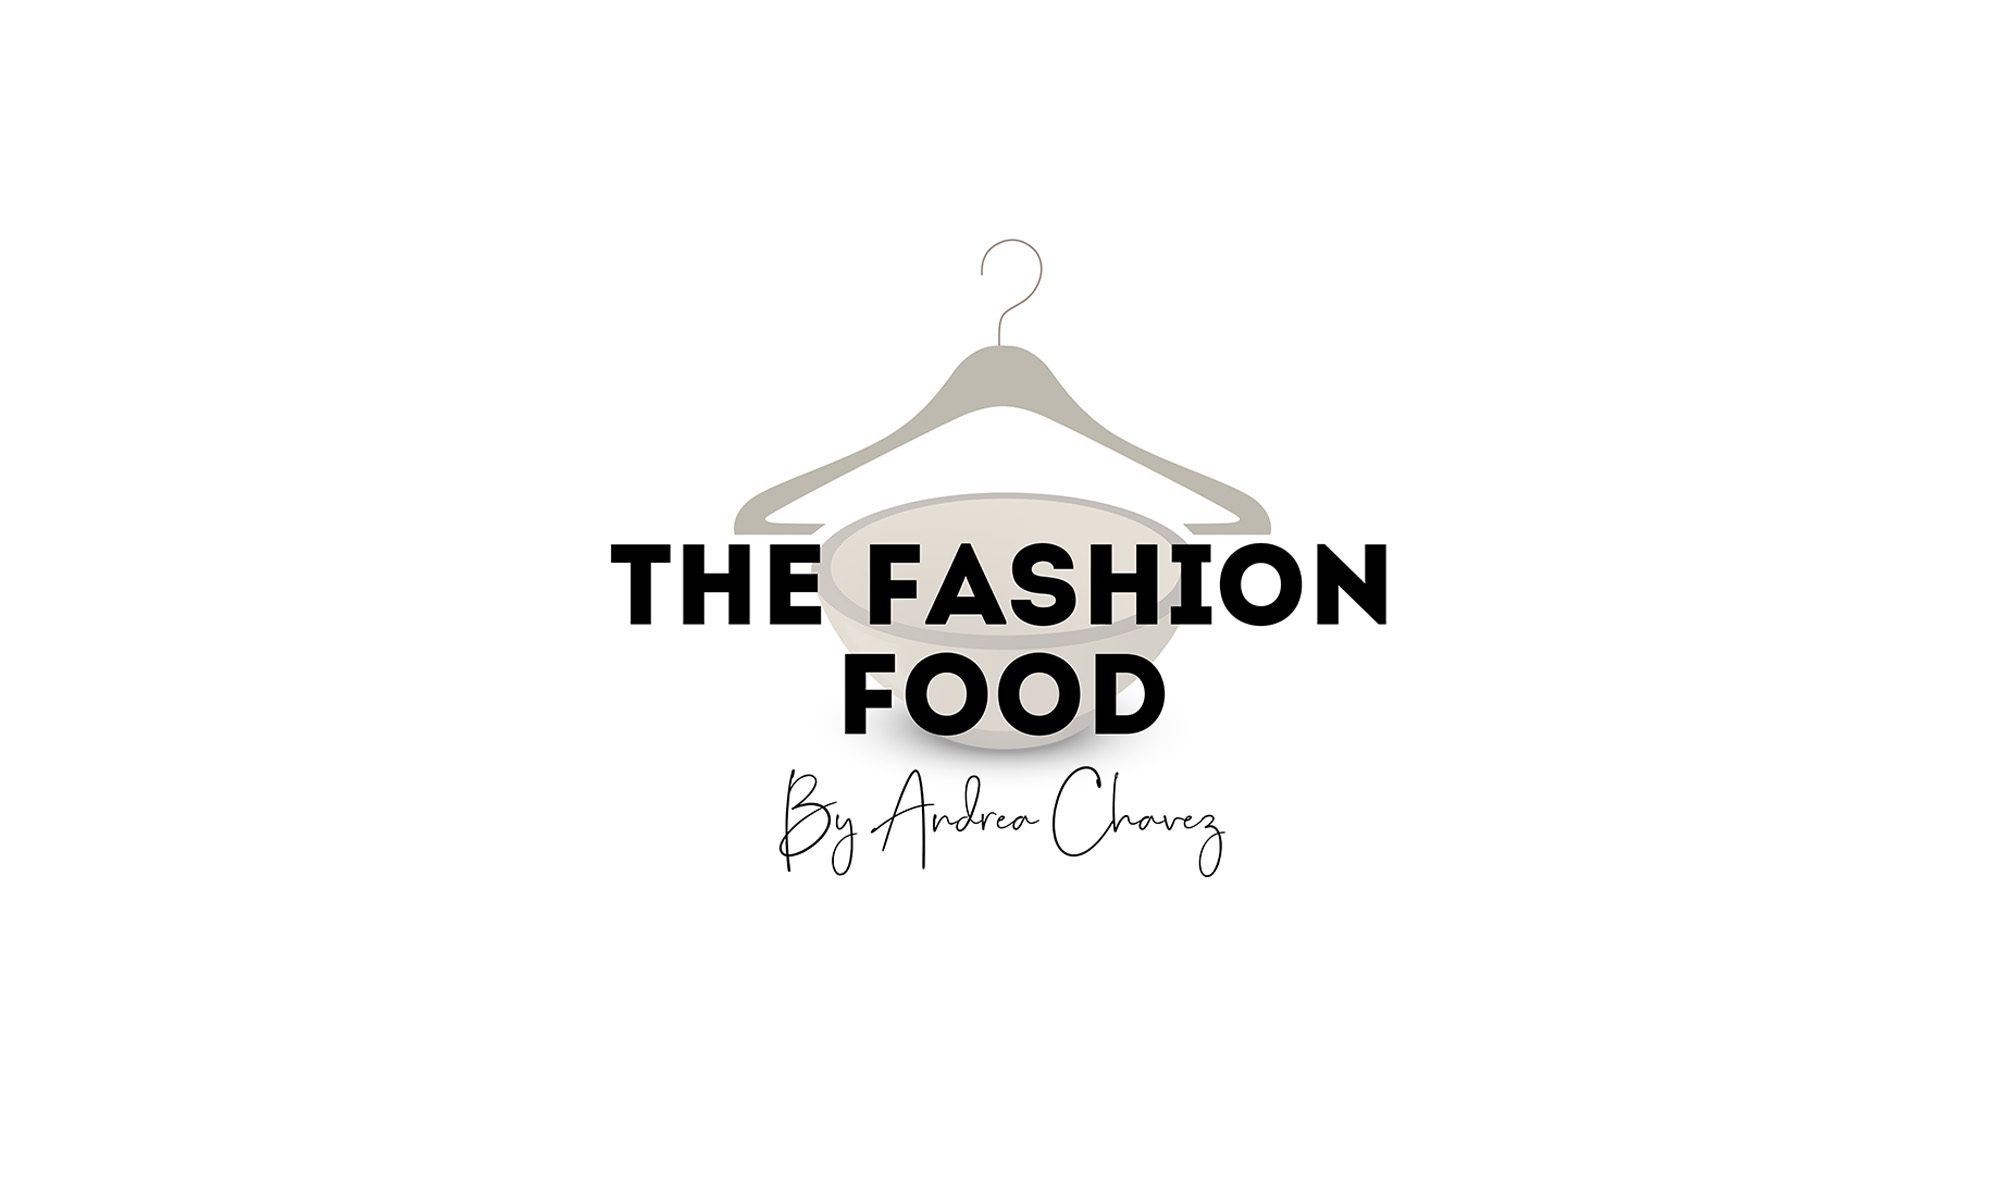 The Fashion Food